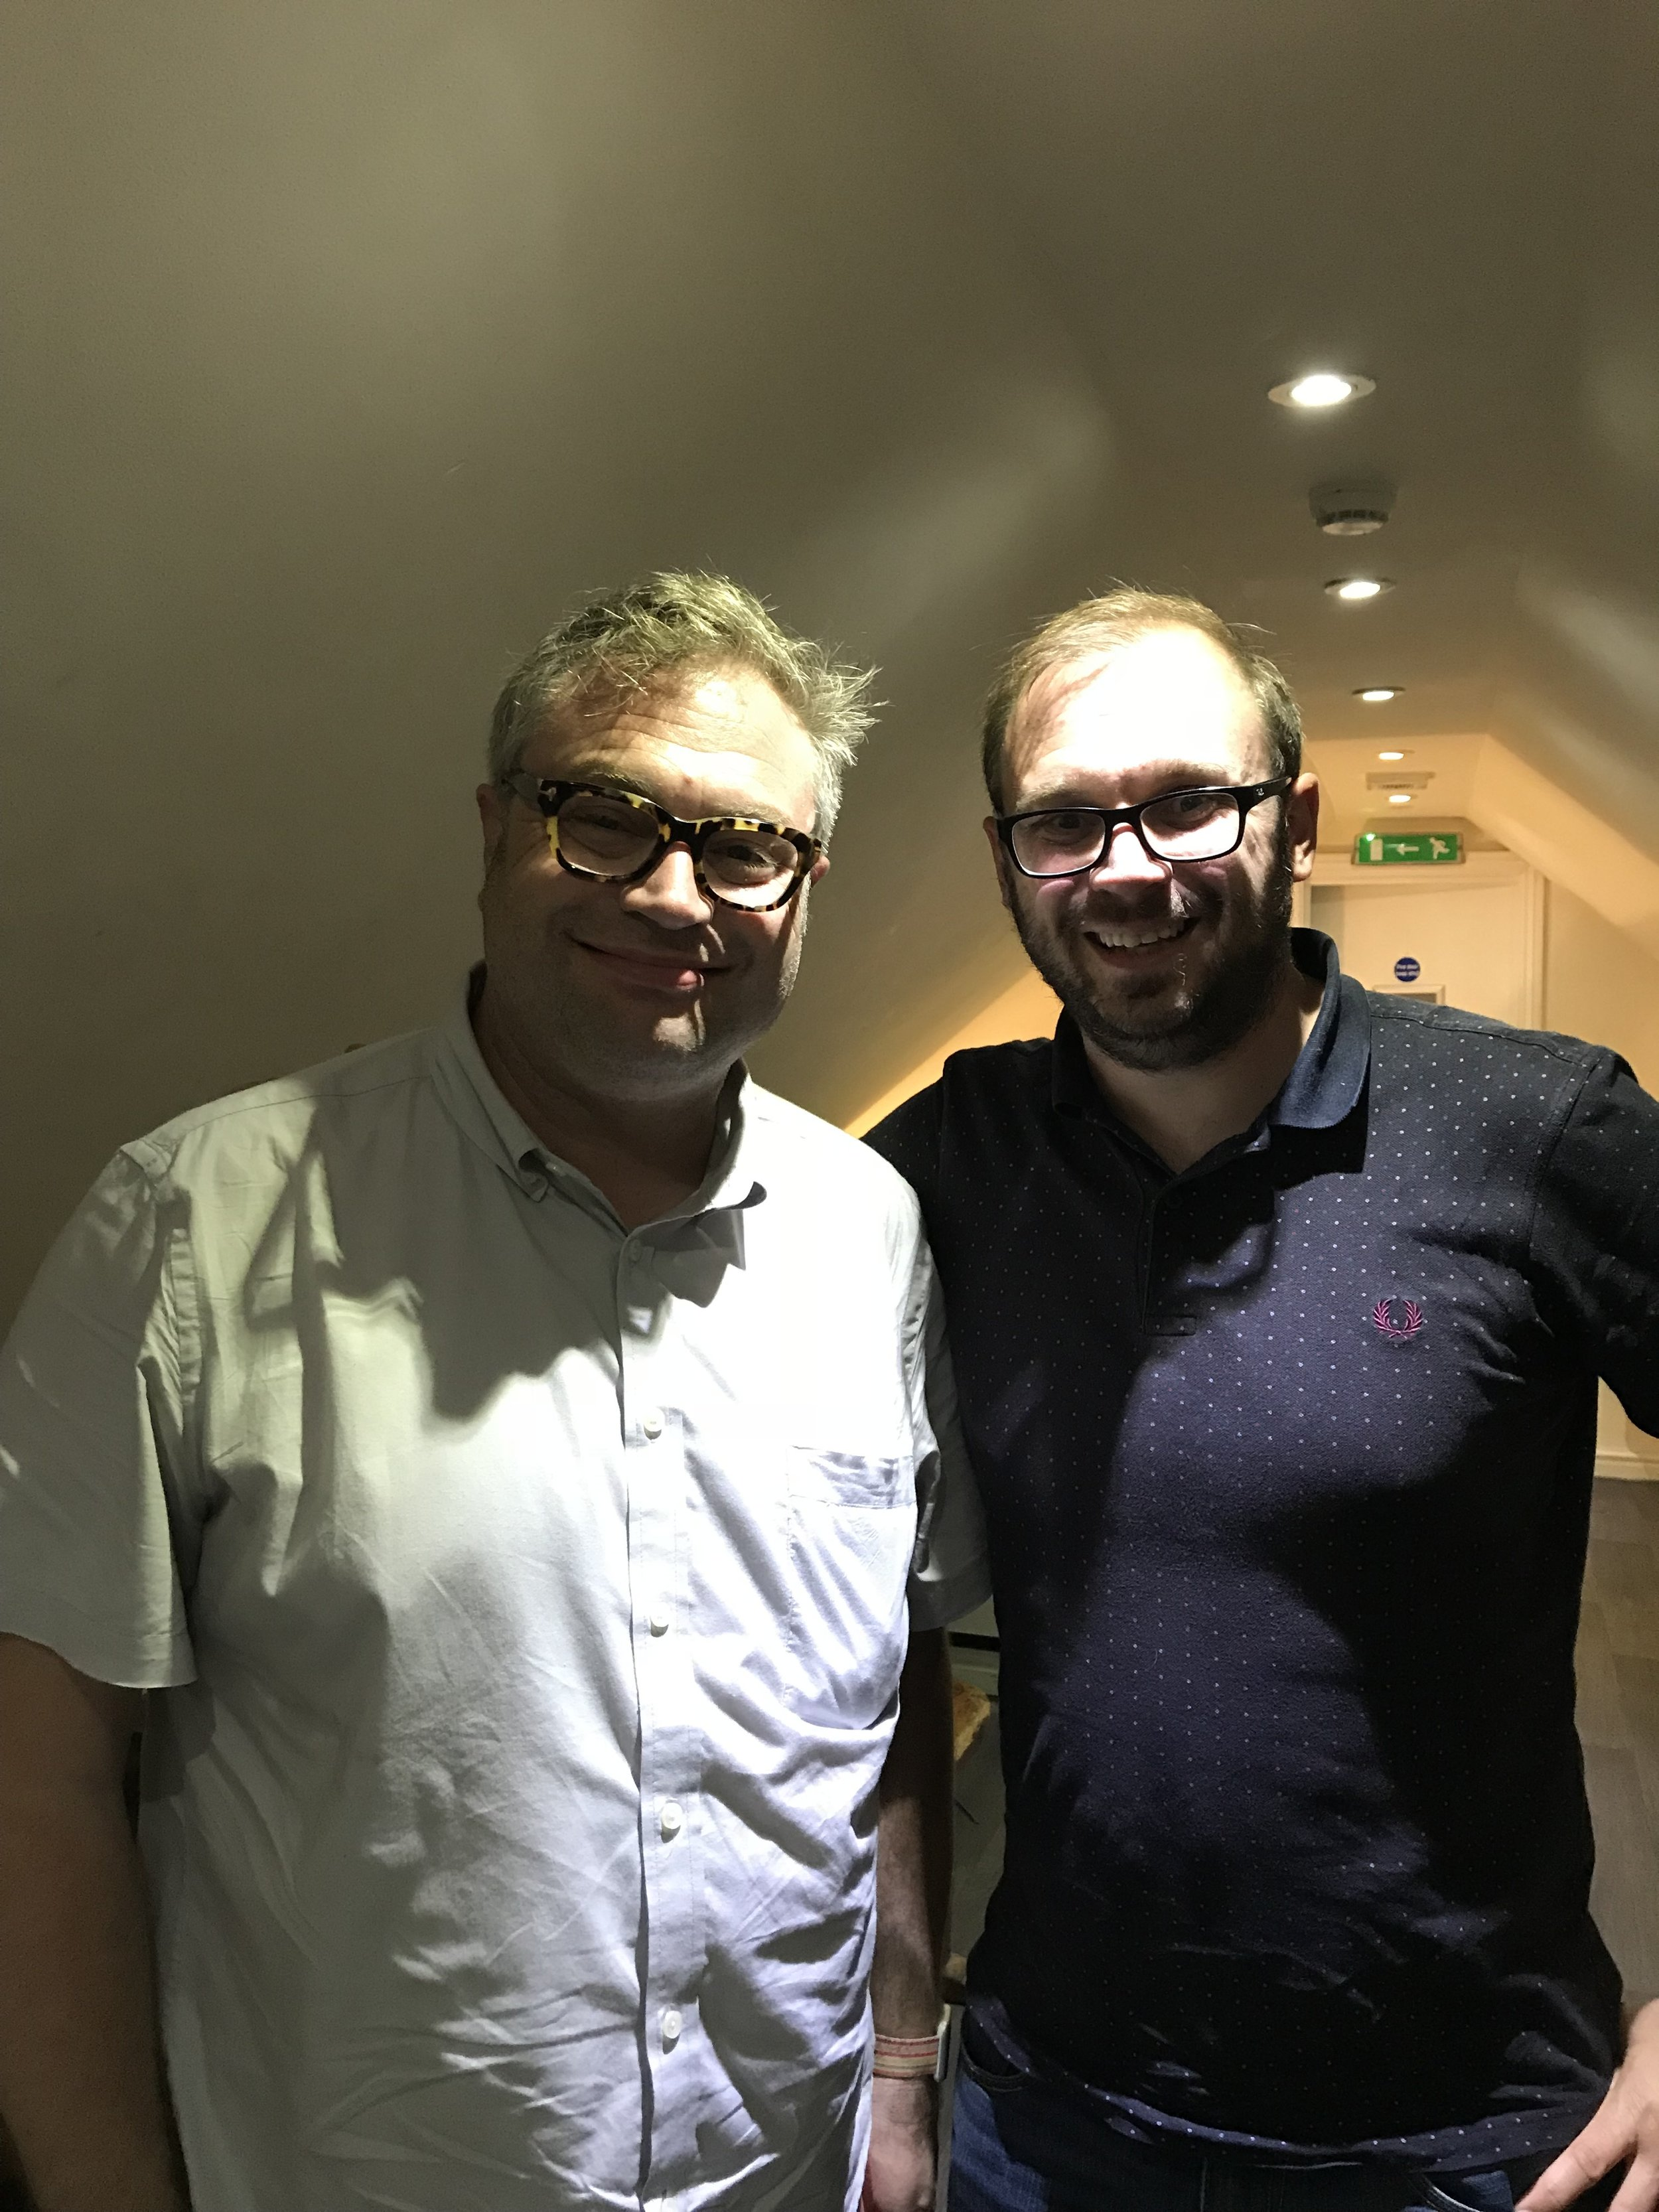 A very happy Ben with Steven Page - Barenaked Ladies co-founder